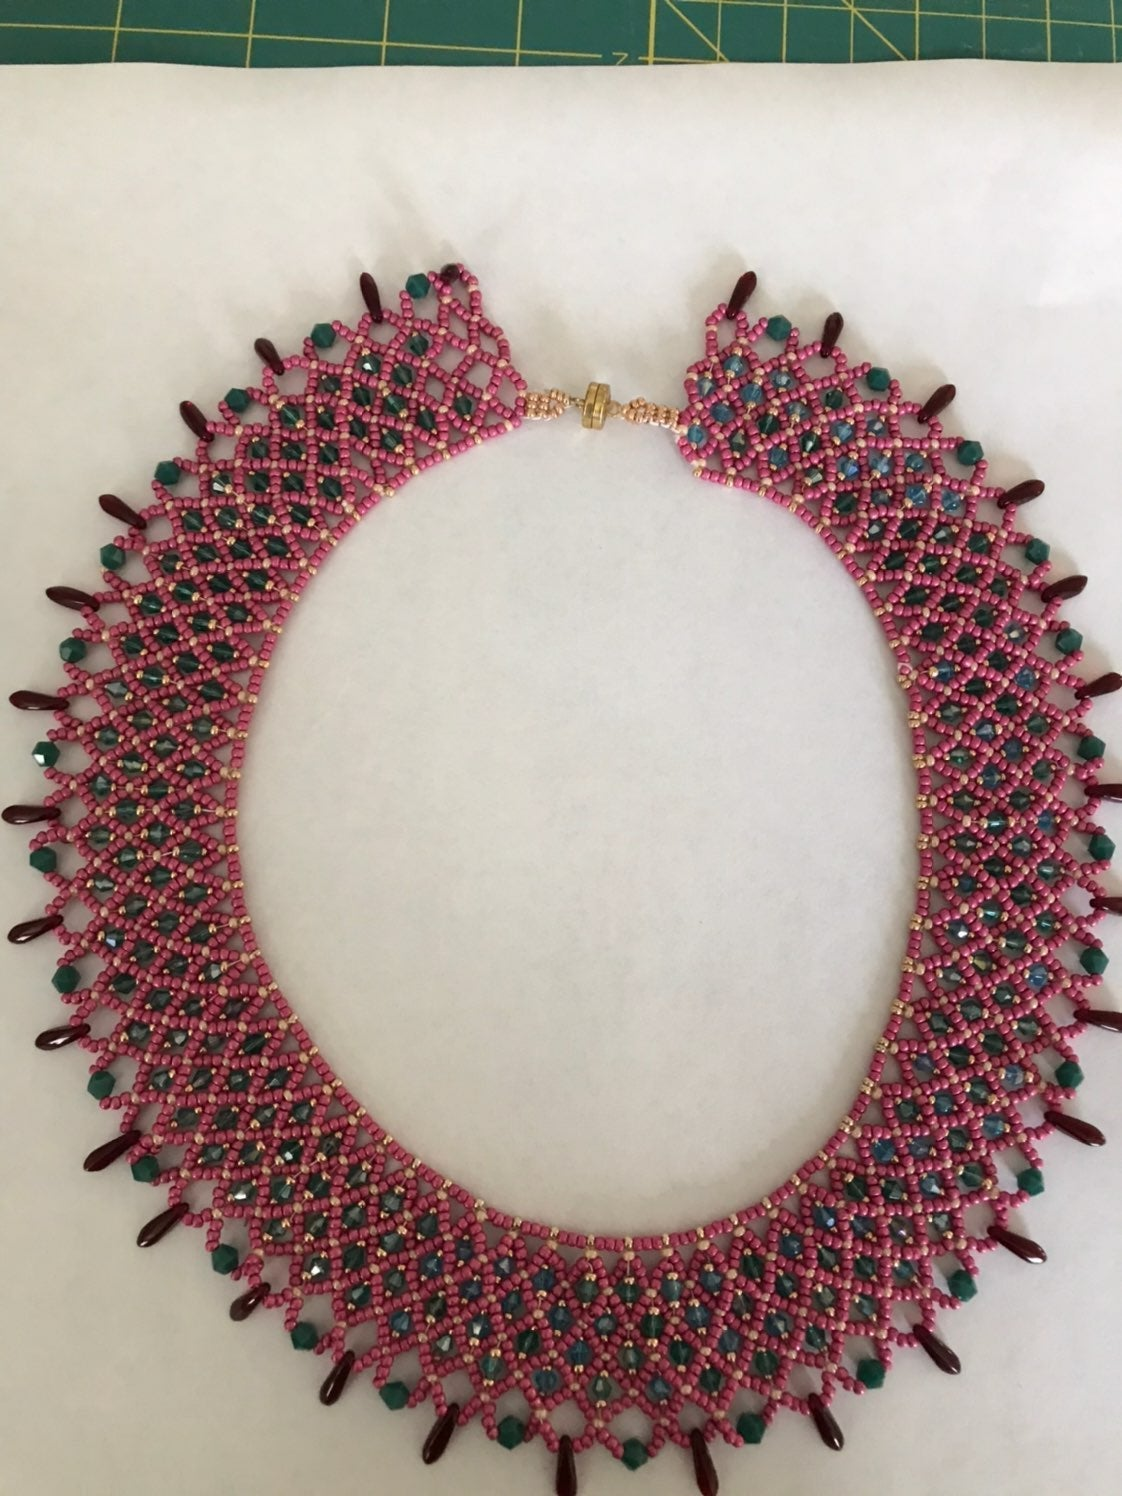 RBG style beaded necklace rose, teal and